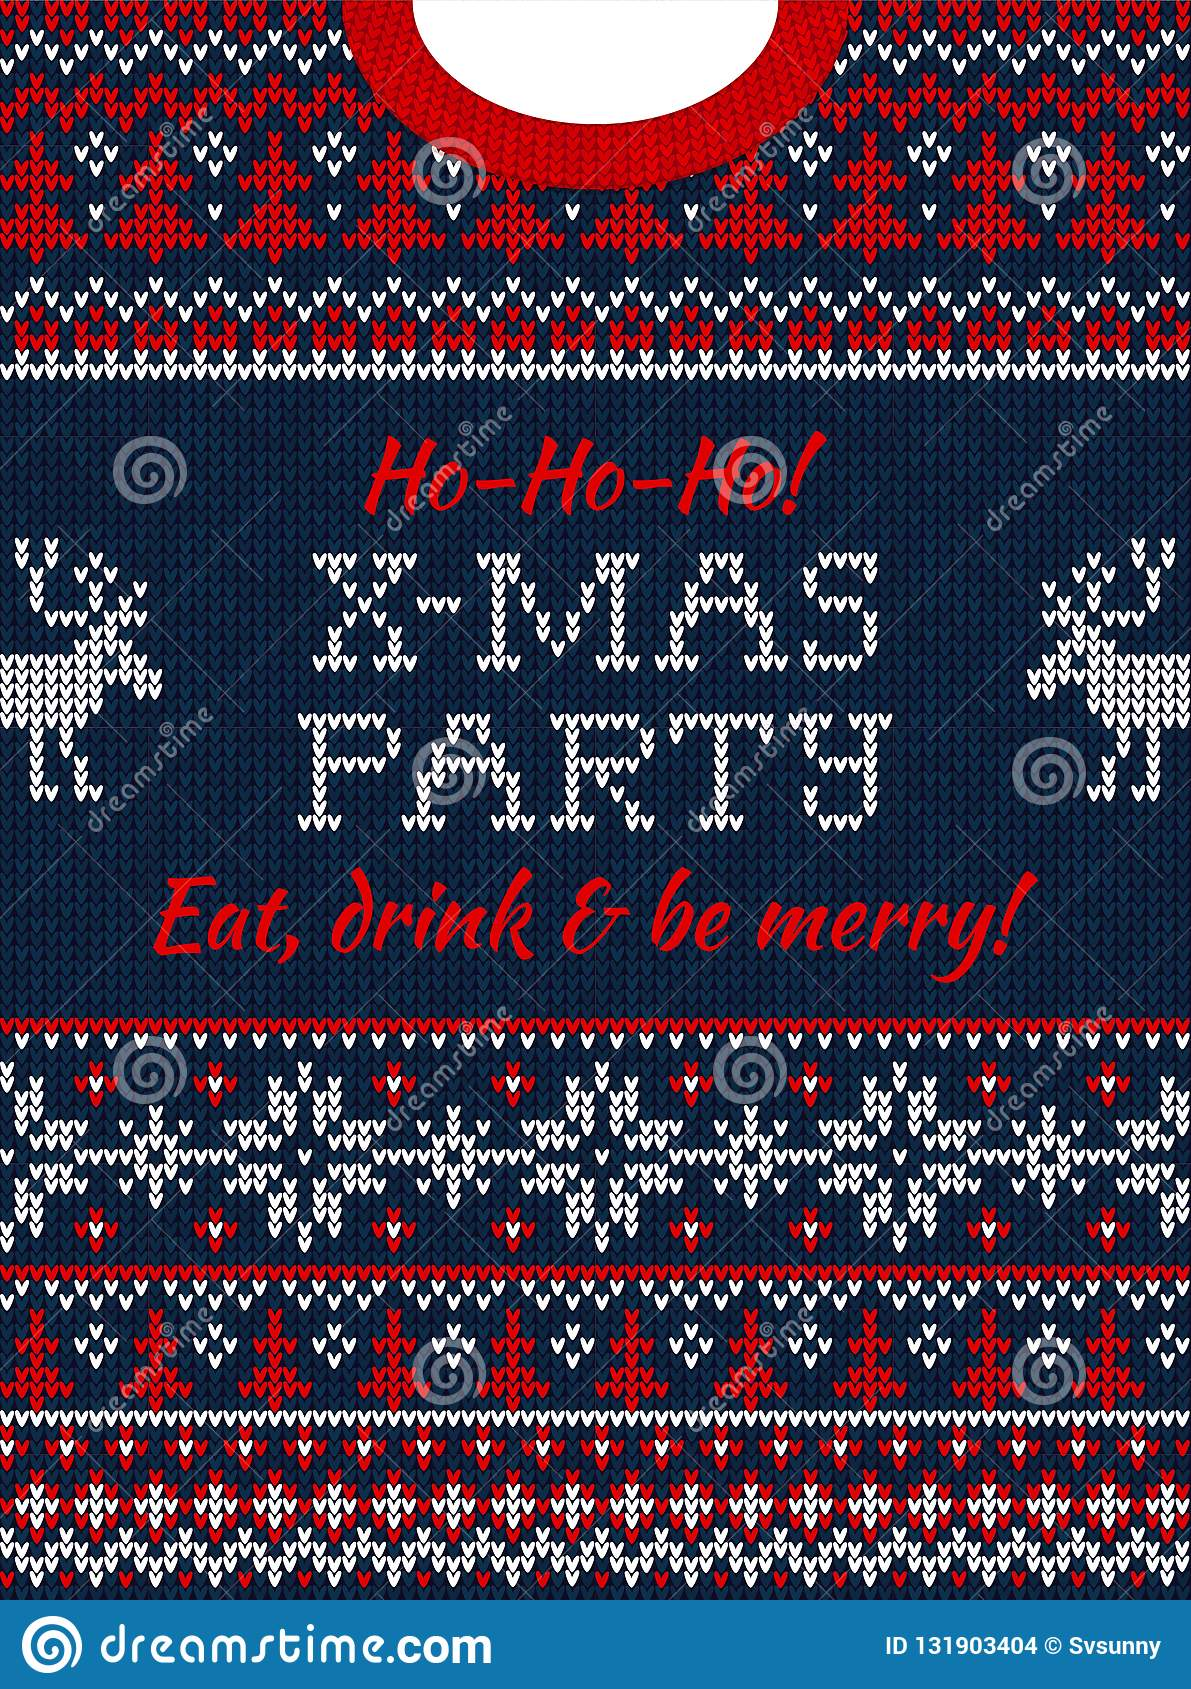 2b6487c041d57 Ugly sweater Christmas party invite. Knitted background pattern  scandinavian ornaments